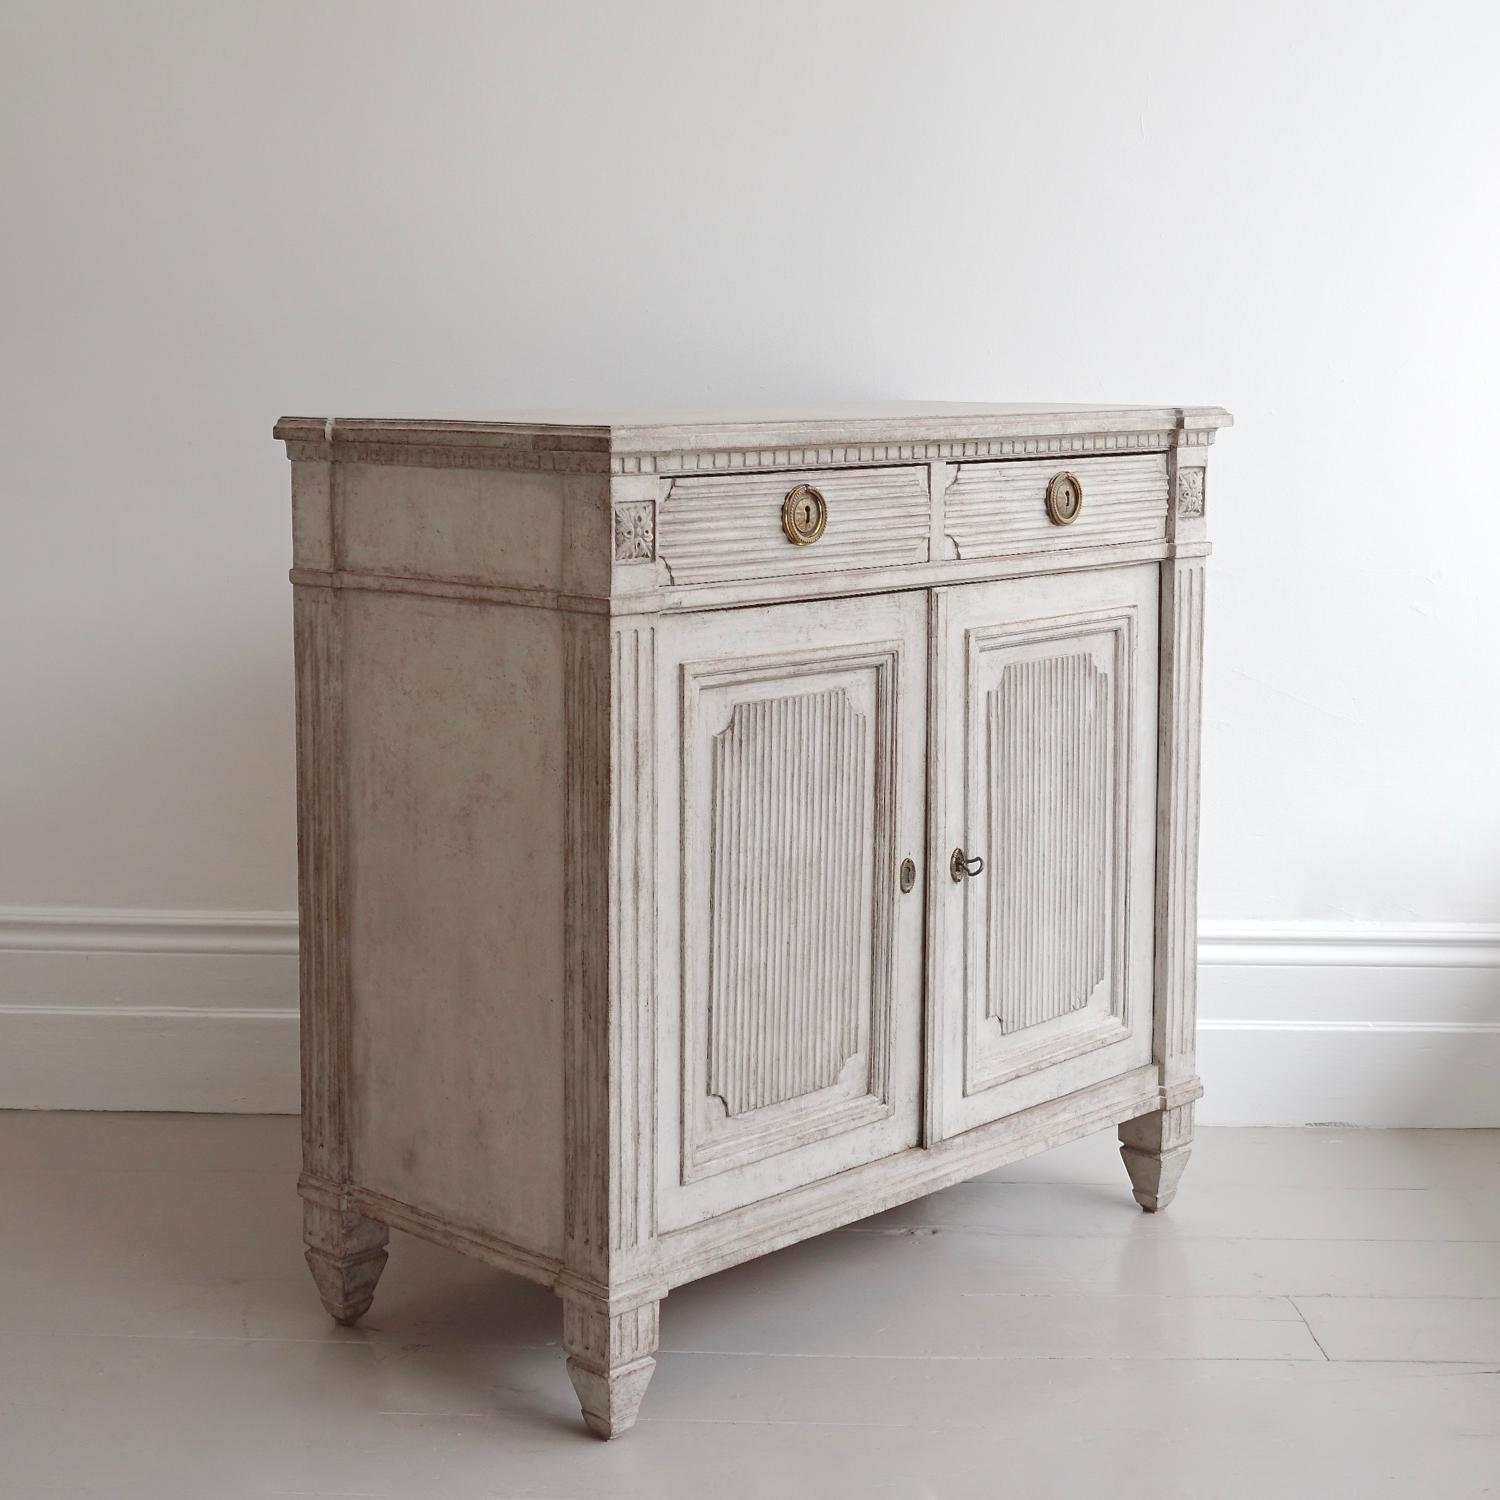 RICHLY CARVED SWEDISH GUSTAVIAN STYLE SIDEBOARD